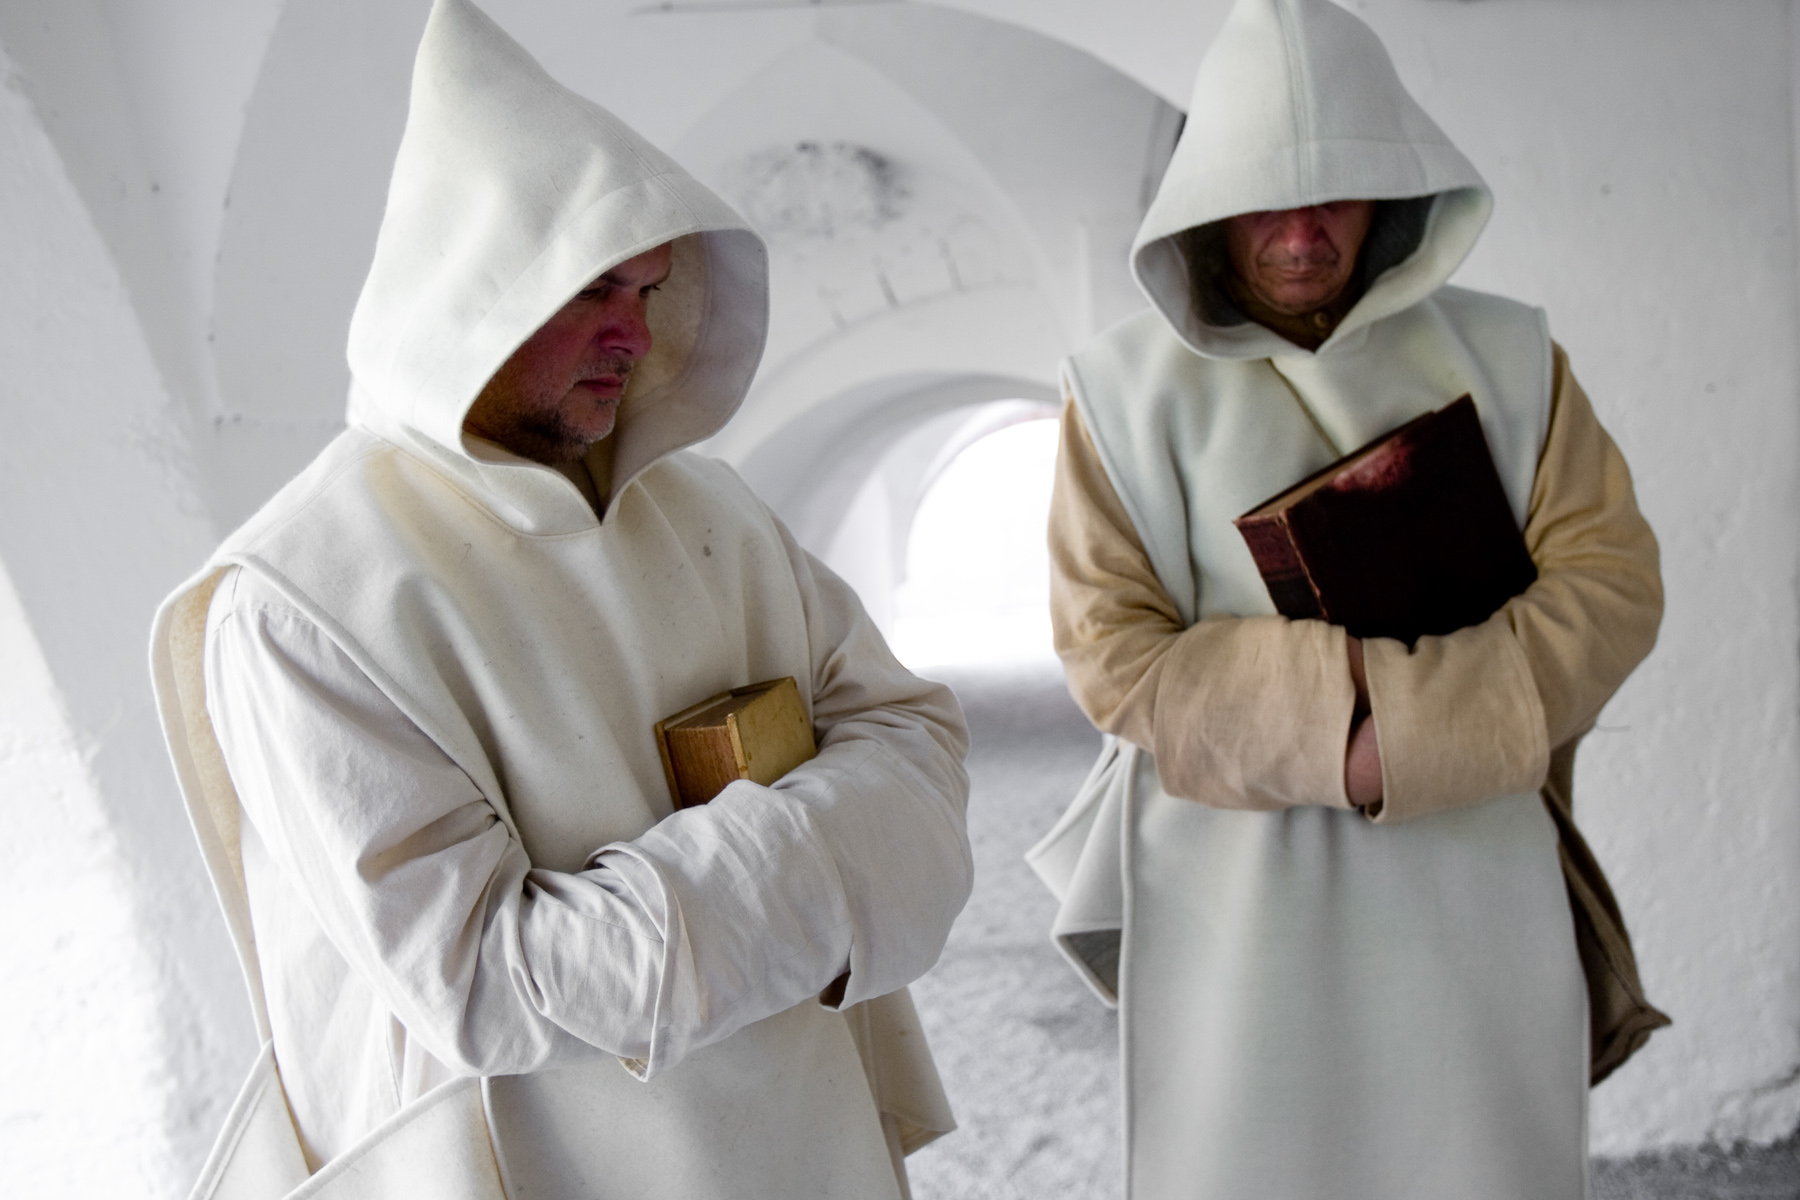 Actors playing Carthusian monks during the first day of the Fiery Carthusia Medieval event in 2007. The original rules of the order were obeyed inside the monastic walls. They wear authentic white clothes.